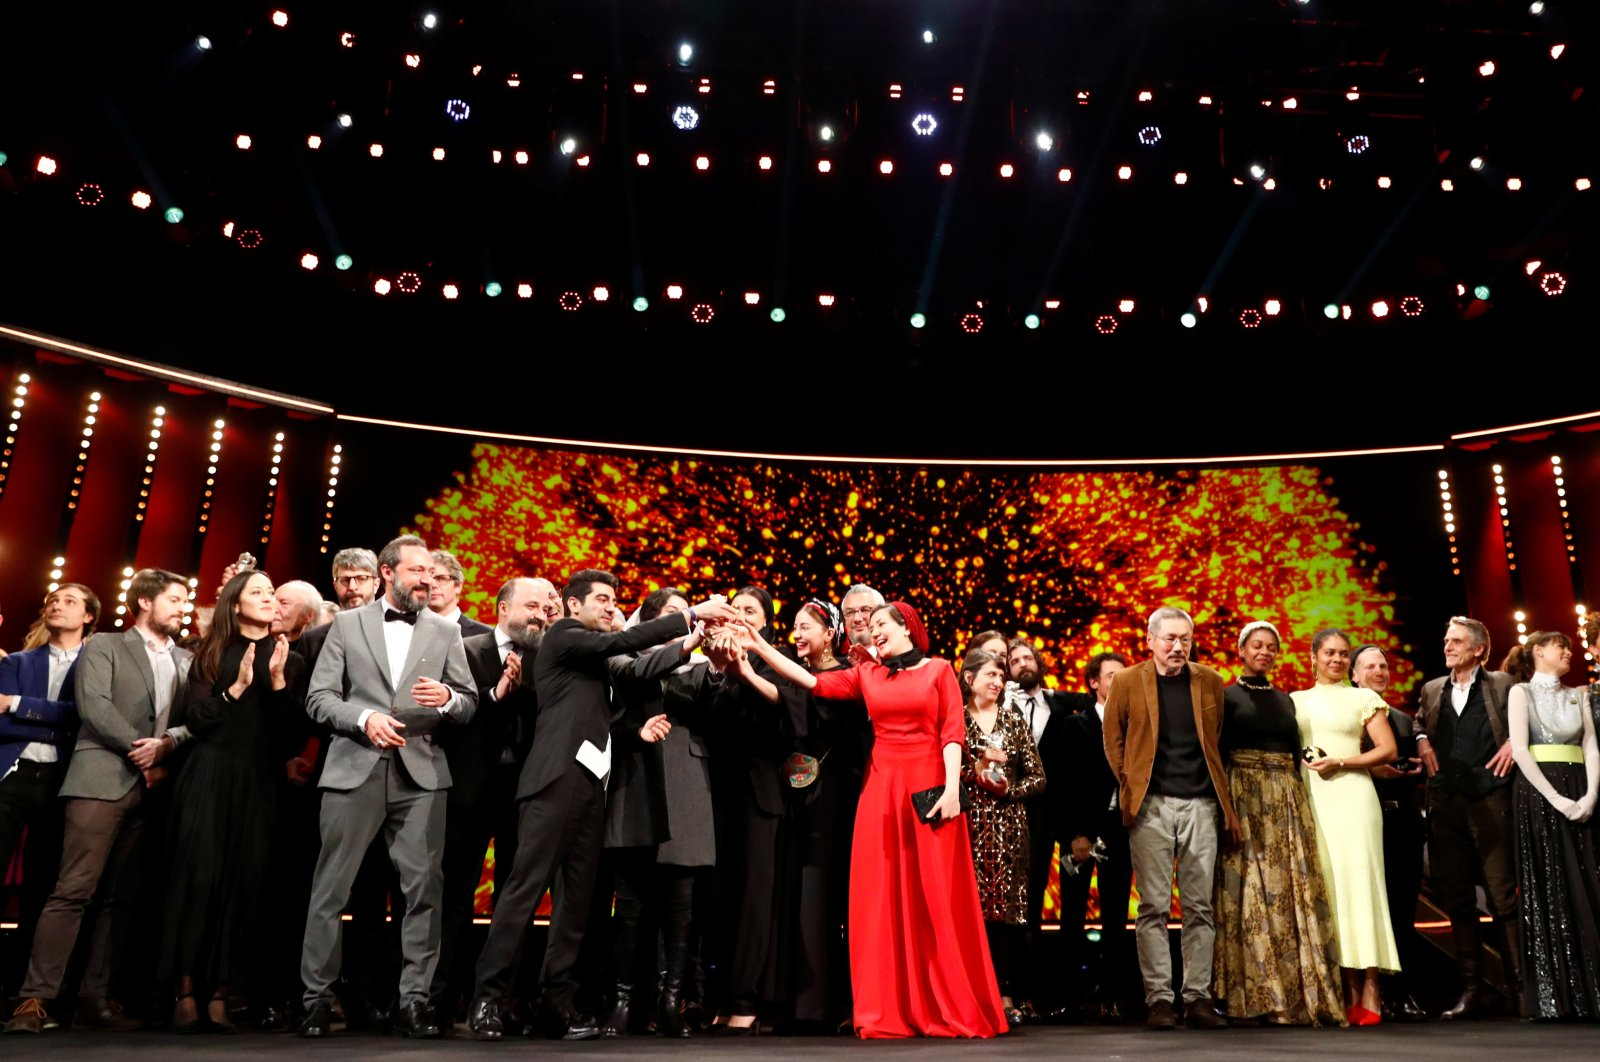 The awarded pose for a family picture after the awards ceremony at the 70th Berlinale International Film Festival in Berlin, Germany, Feb. 29, 2020. (Reuters photo)